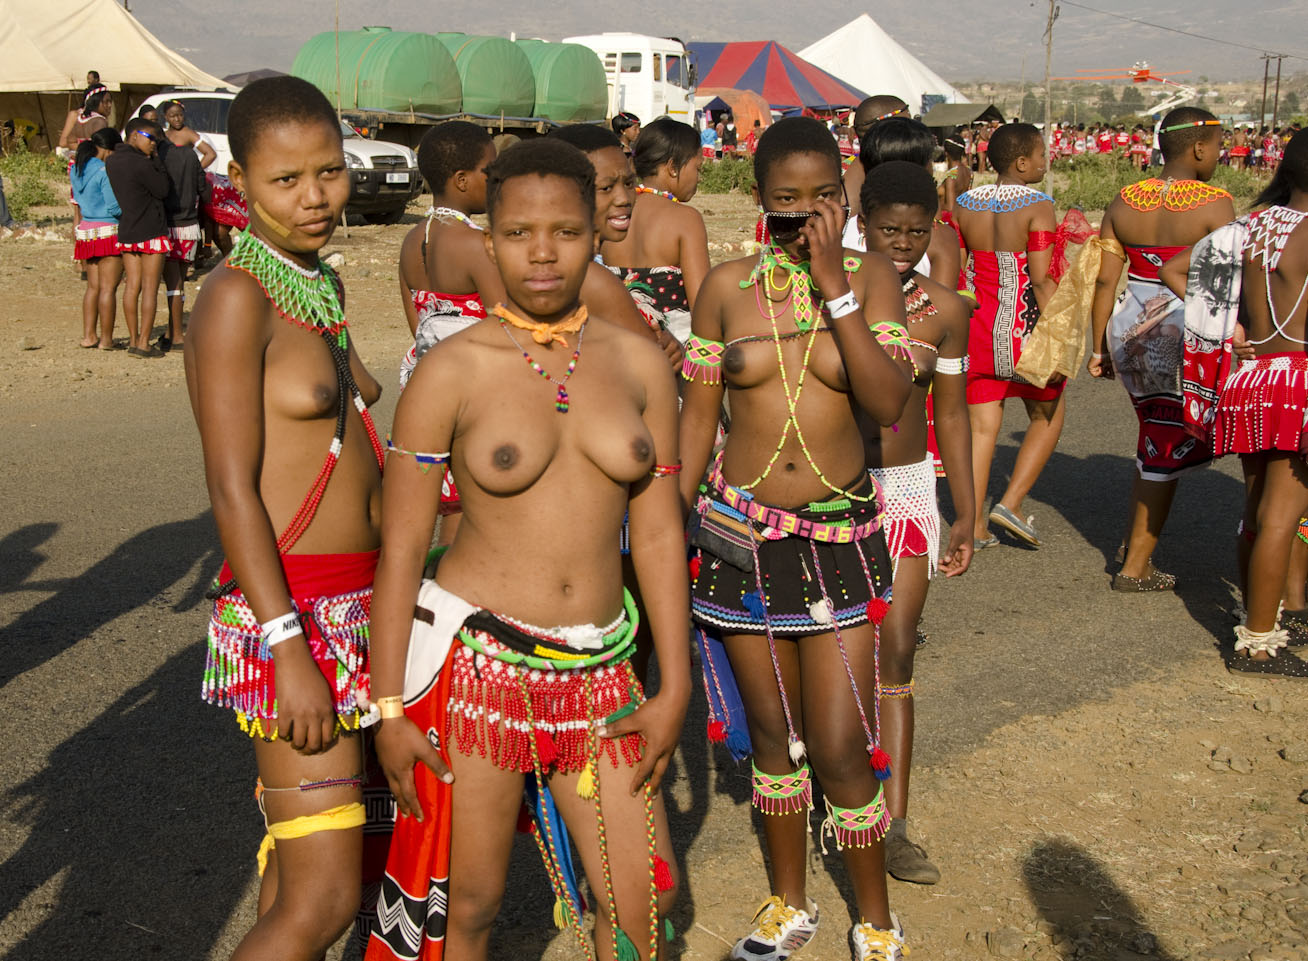 hot in Swaziland nude girl